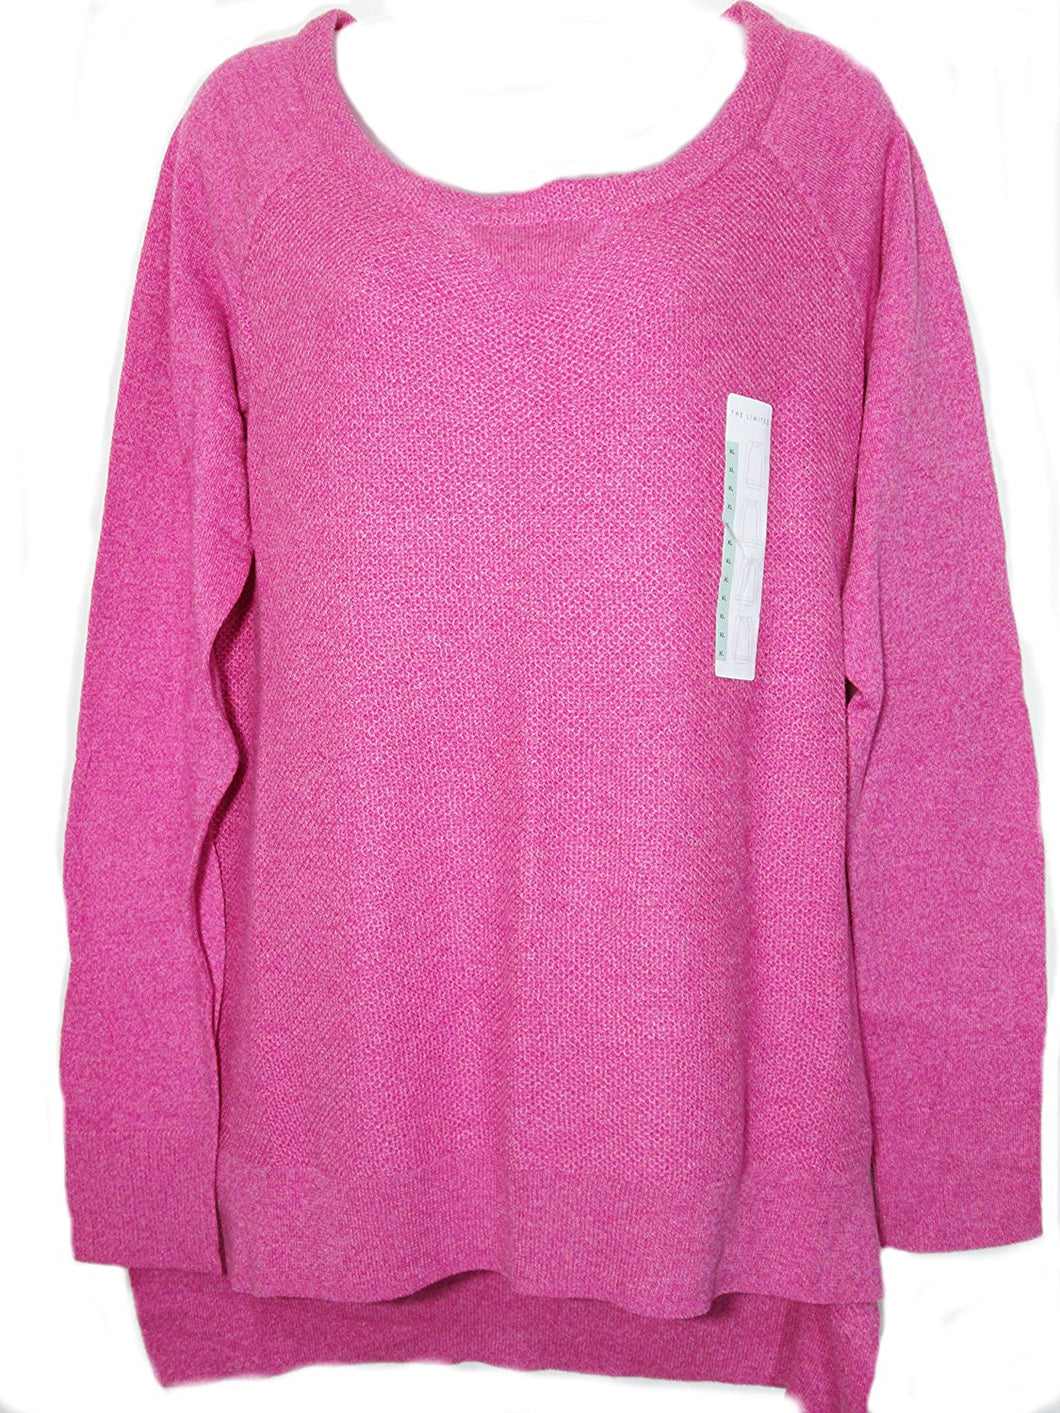 The Limited Womens Size X-Large Lightweight Sweater, Fluorescent Pink